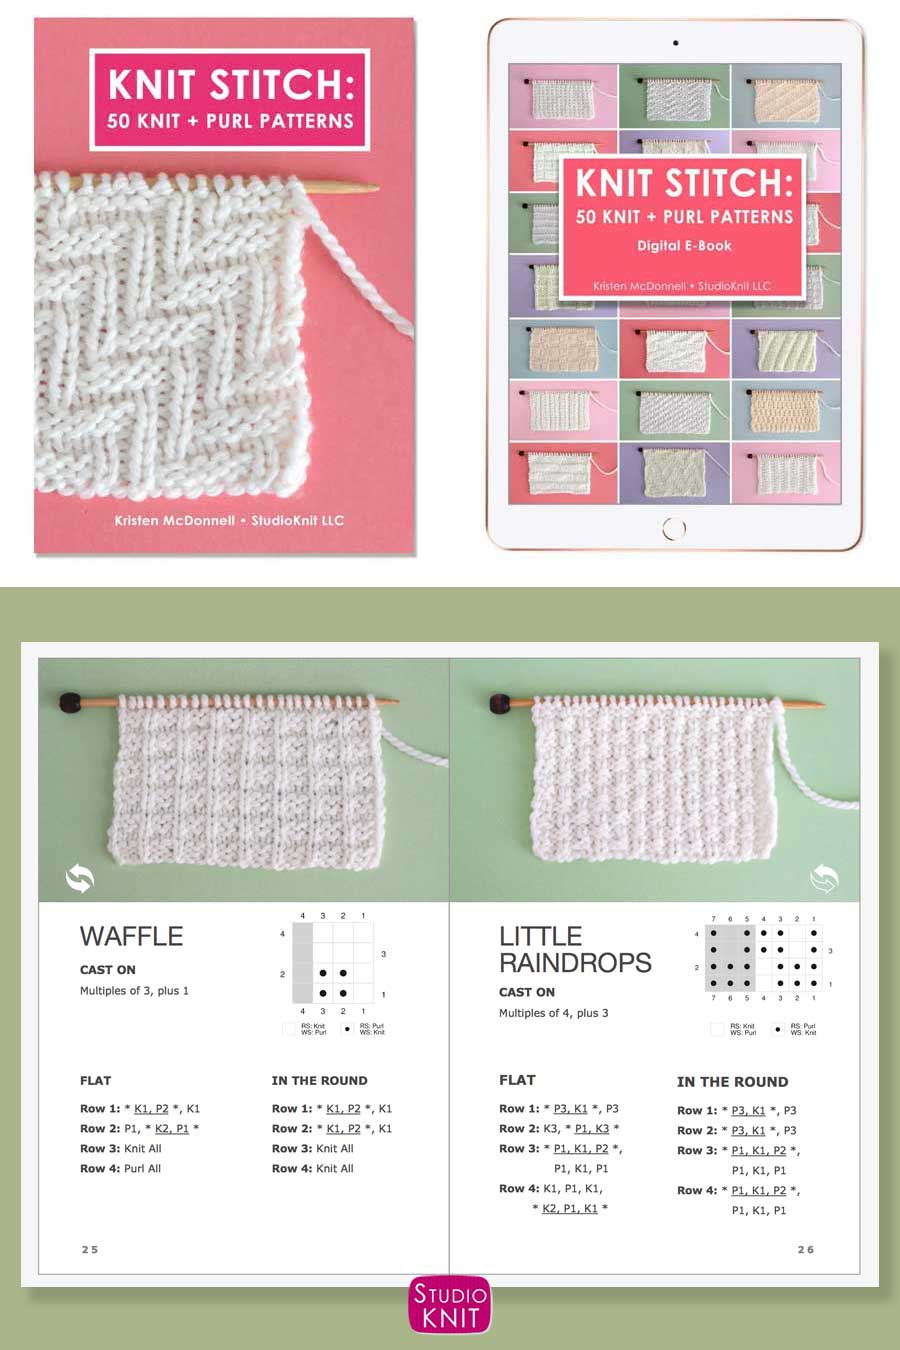 Knit Stitch Pattern Book with Waffle Stitch Pattern by Studio Knit